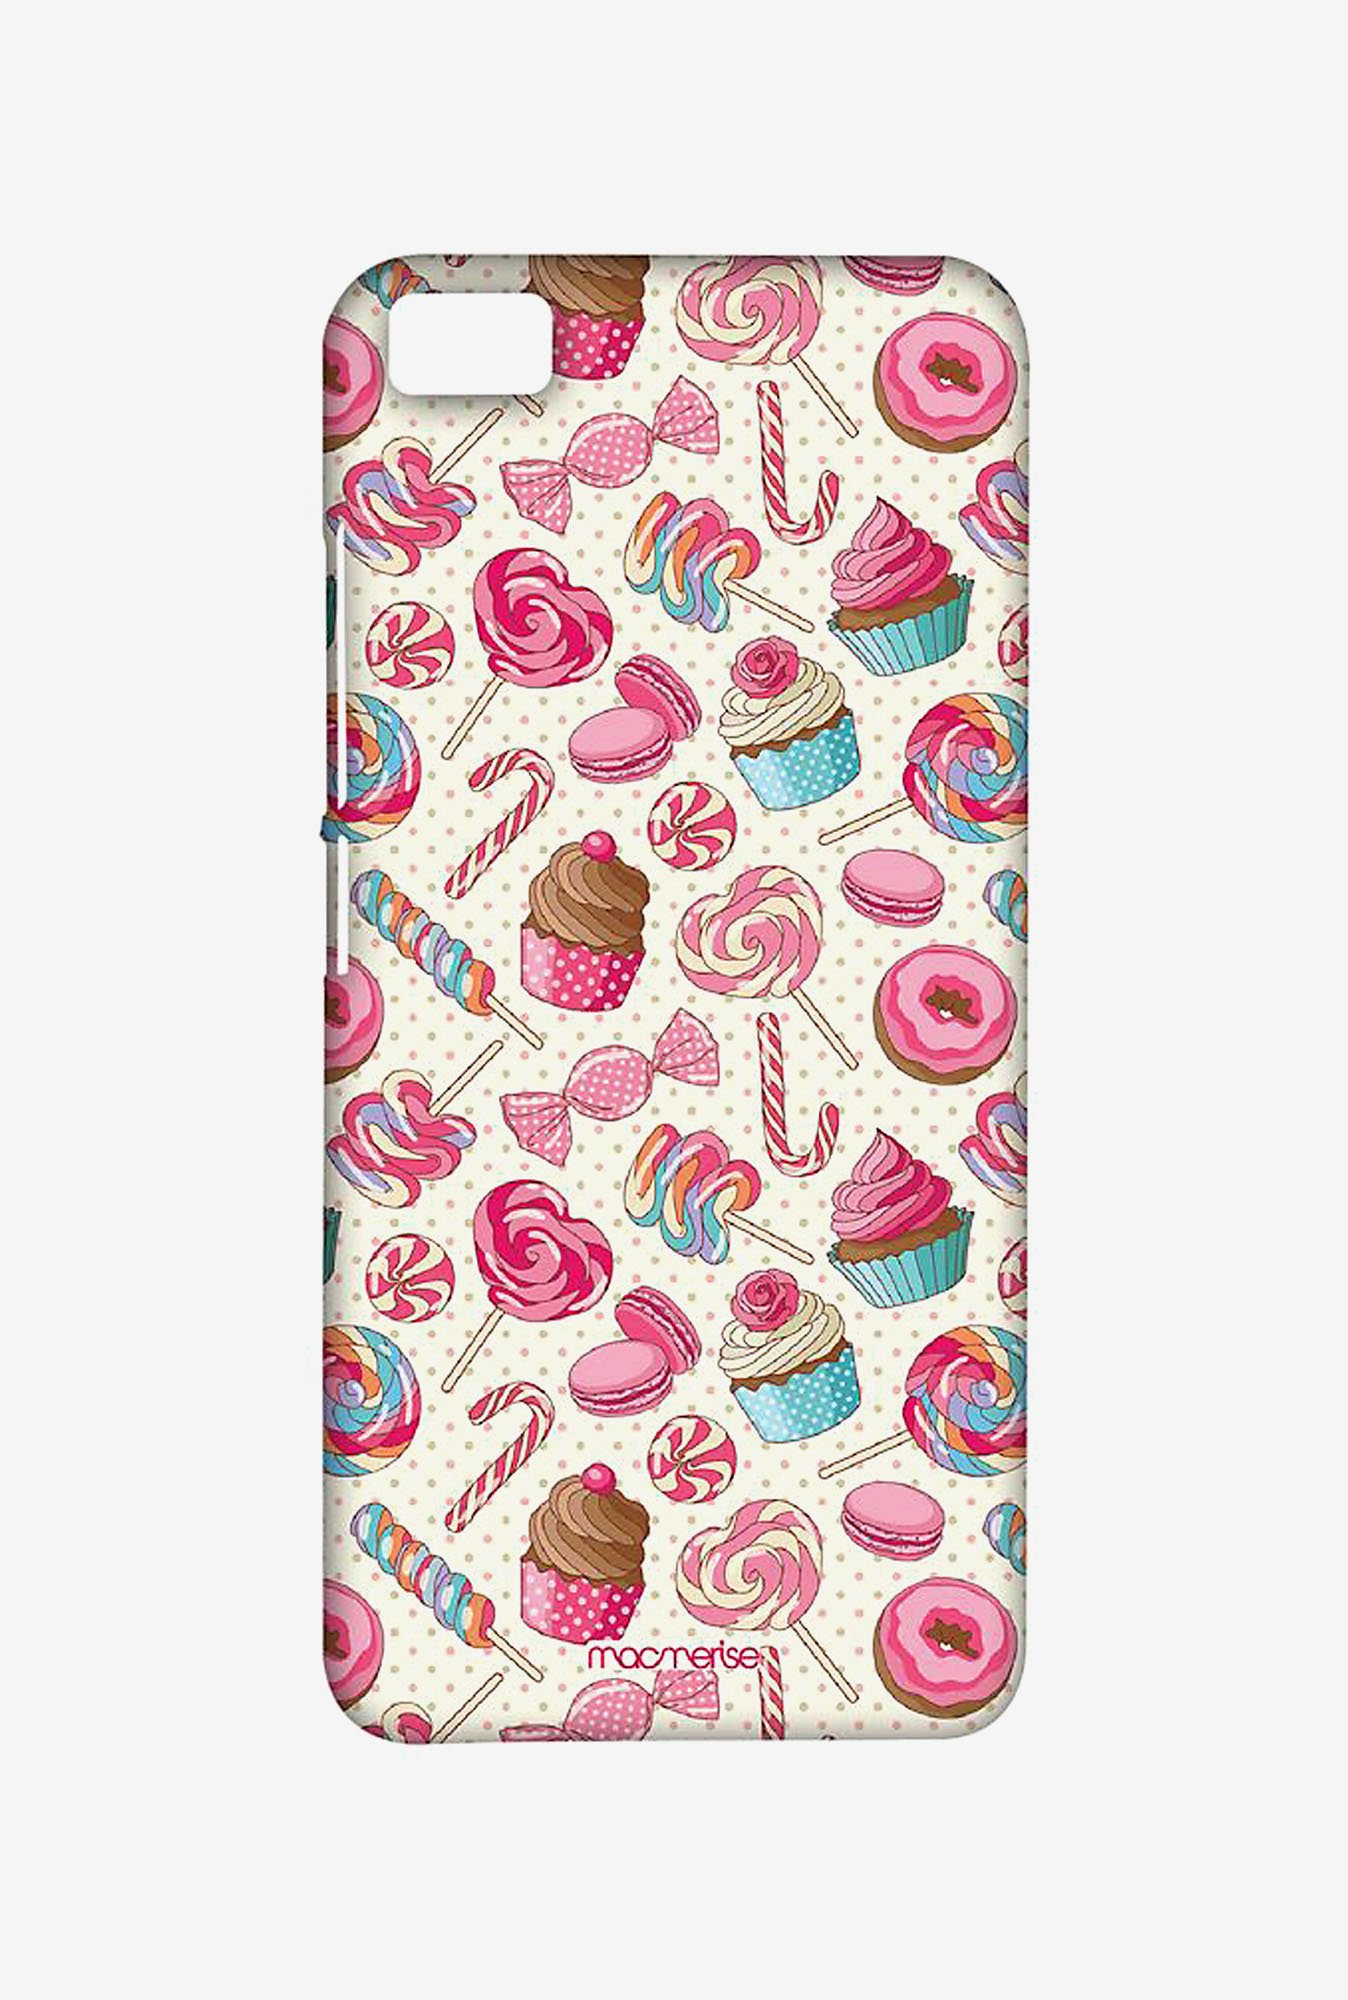 Macmerise XACM5SMI0602 Sugar Rush Sublime Case for Xiaomi Mi5